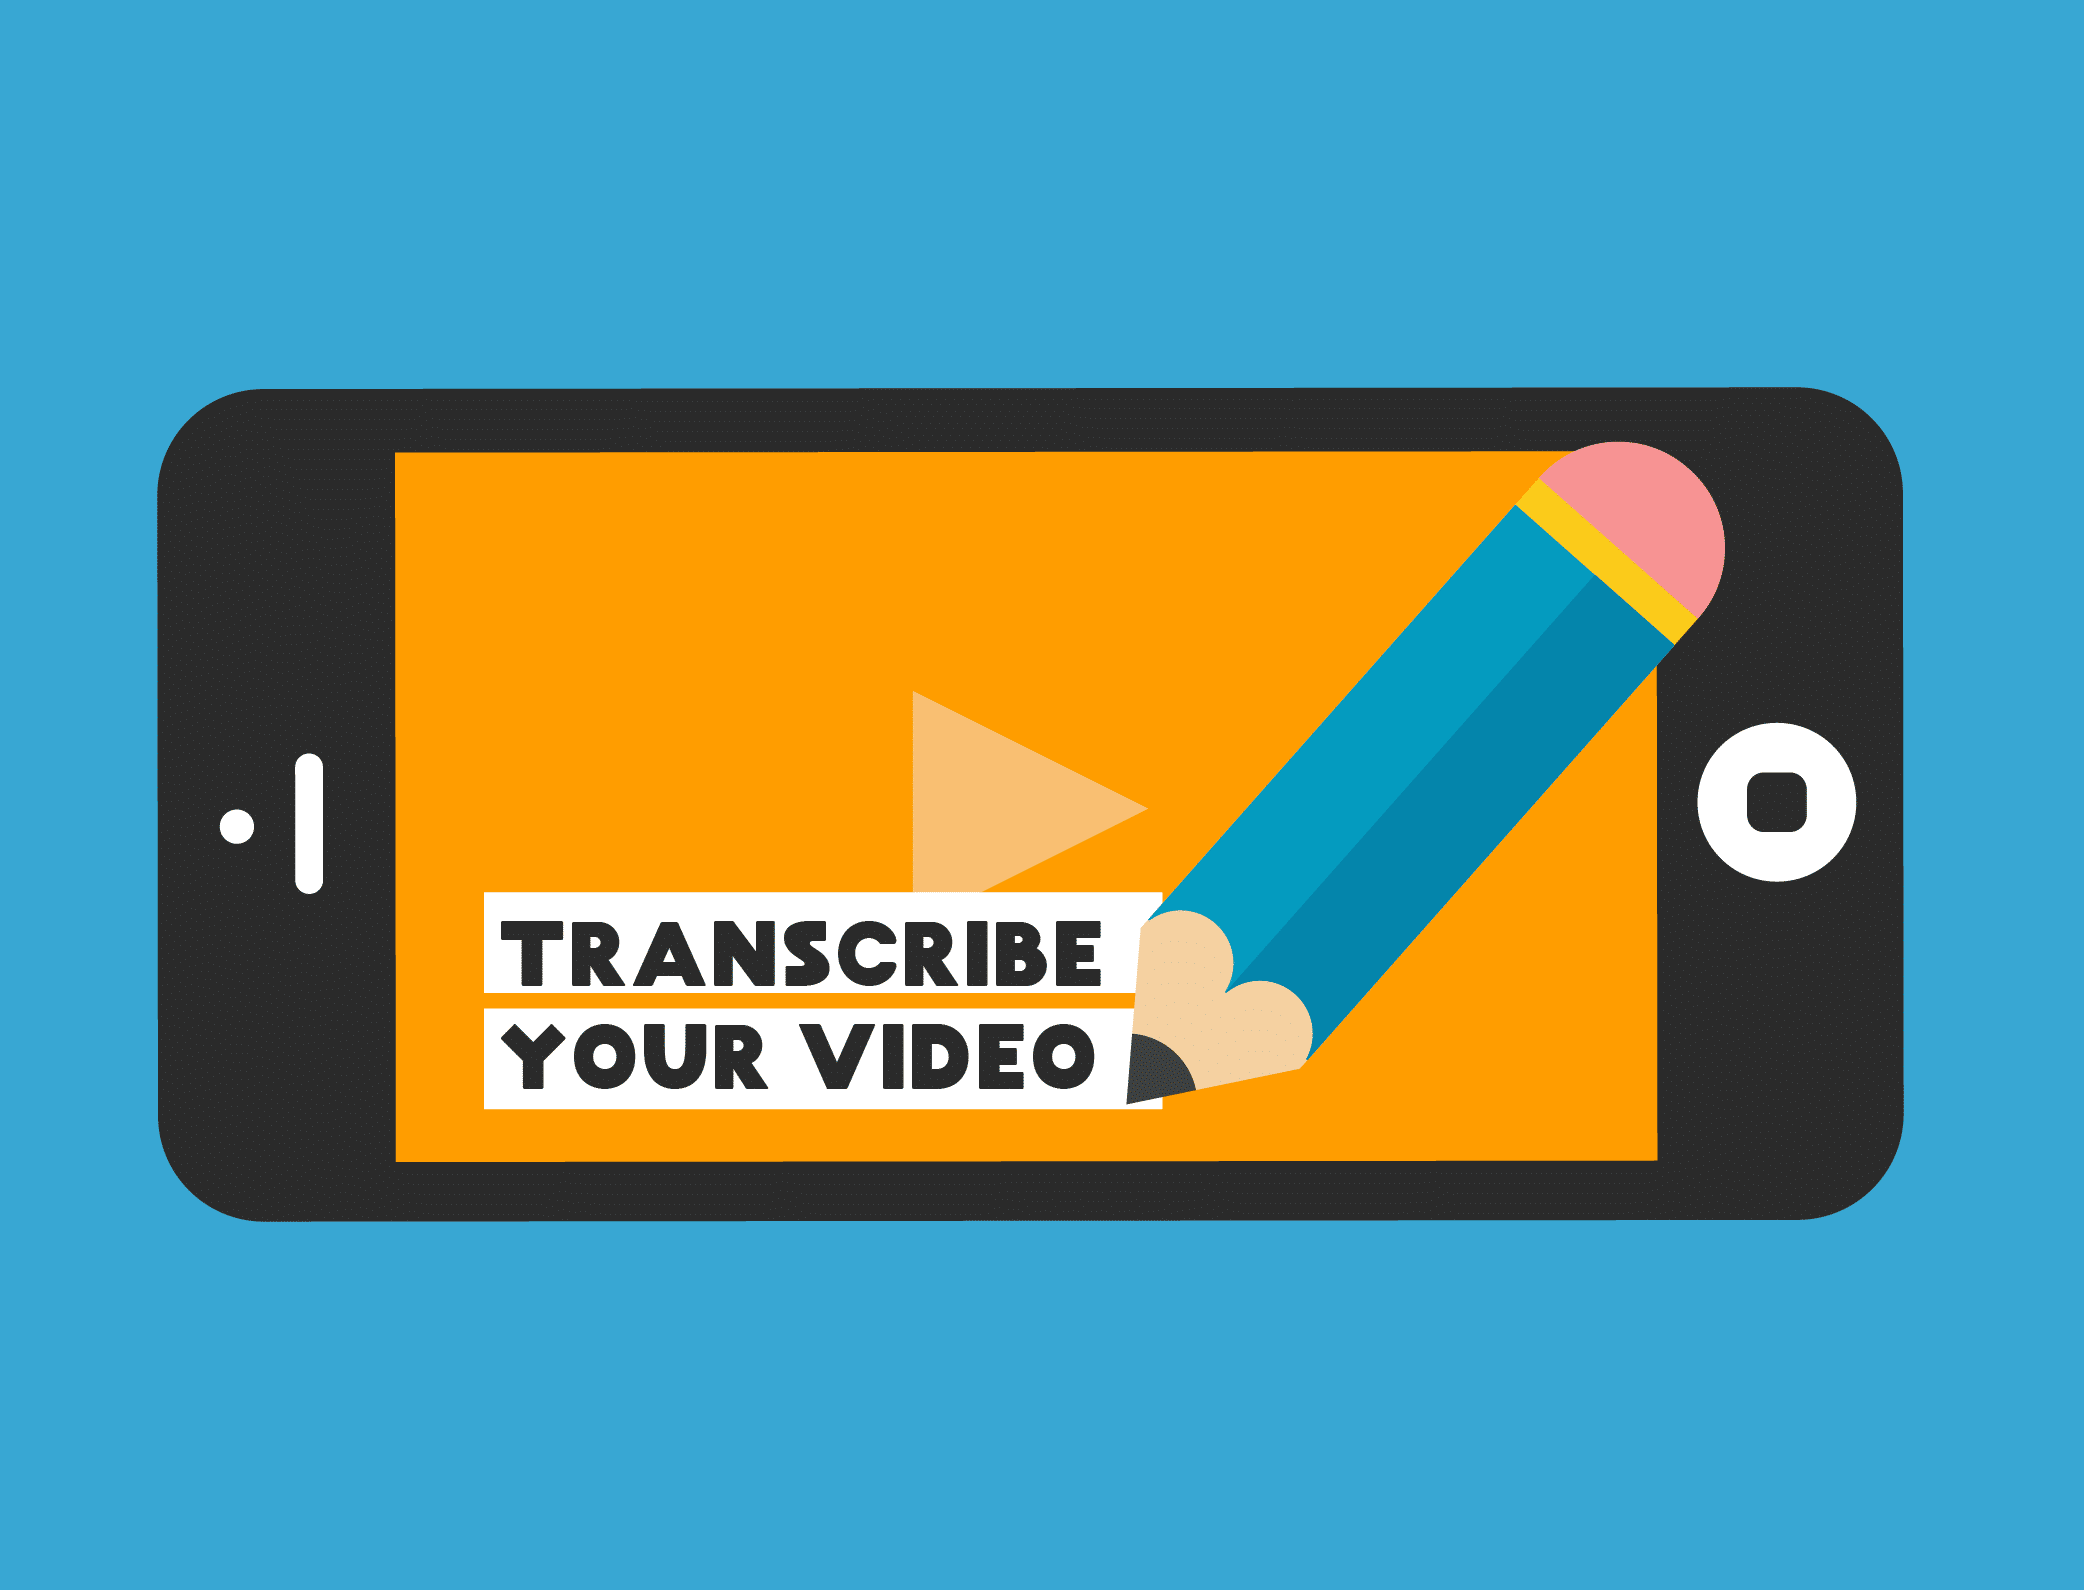 Transcribe Your Video